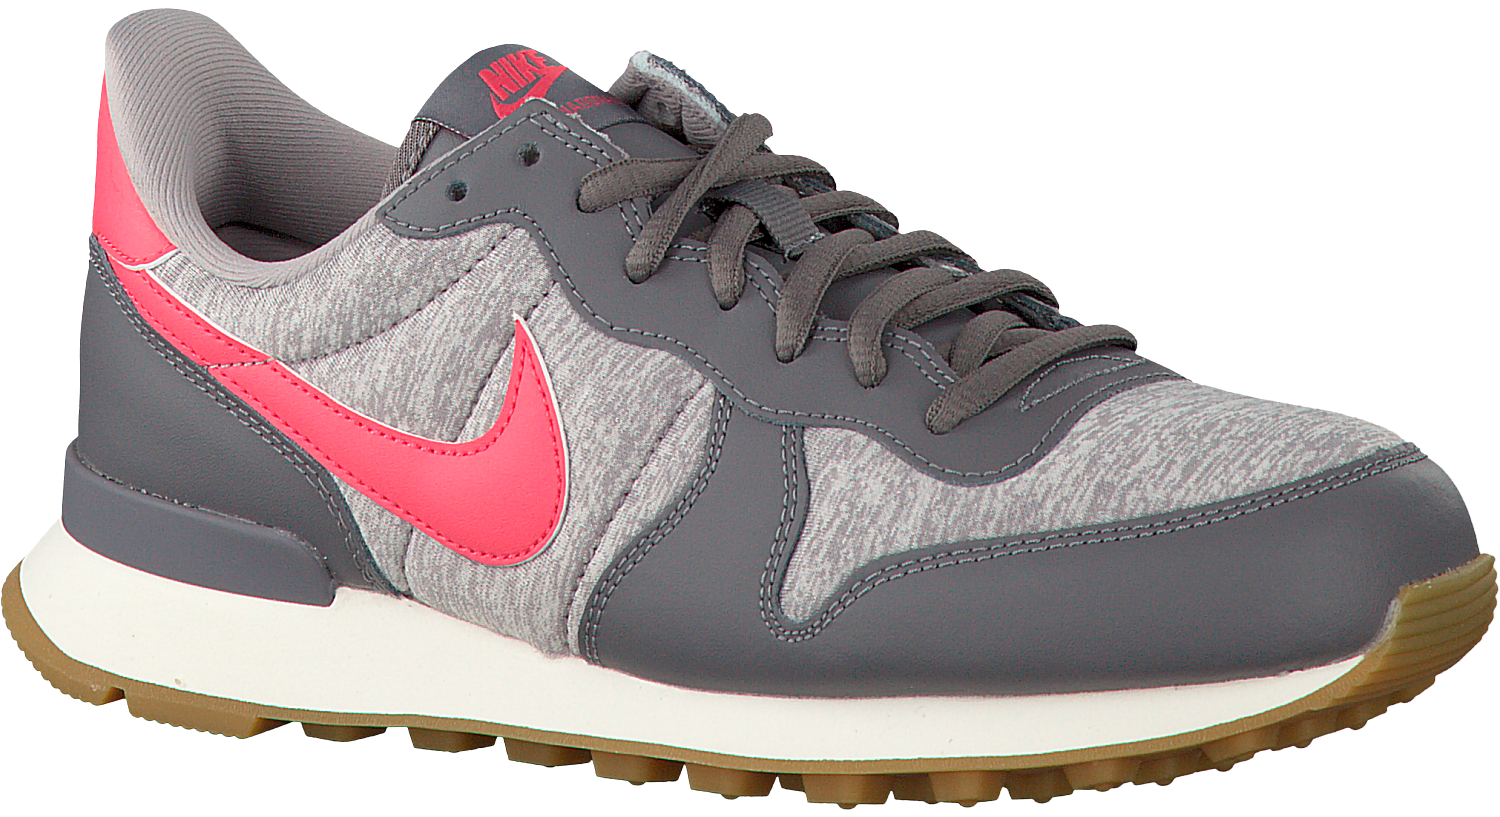 newest collection 91b10 340c6 Grijze NIKE Sneakers INTERNATIONALIST WMNS. NIKE. -40%. Previous